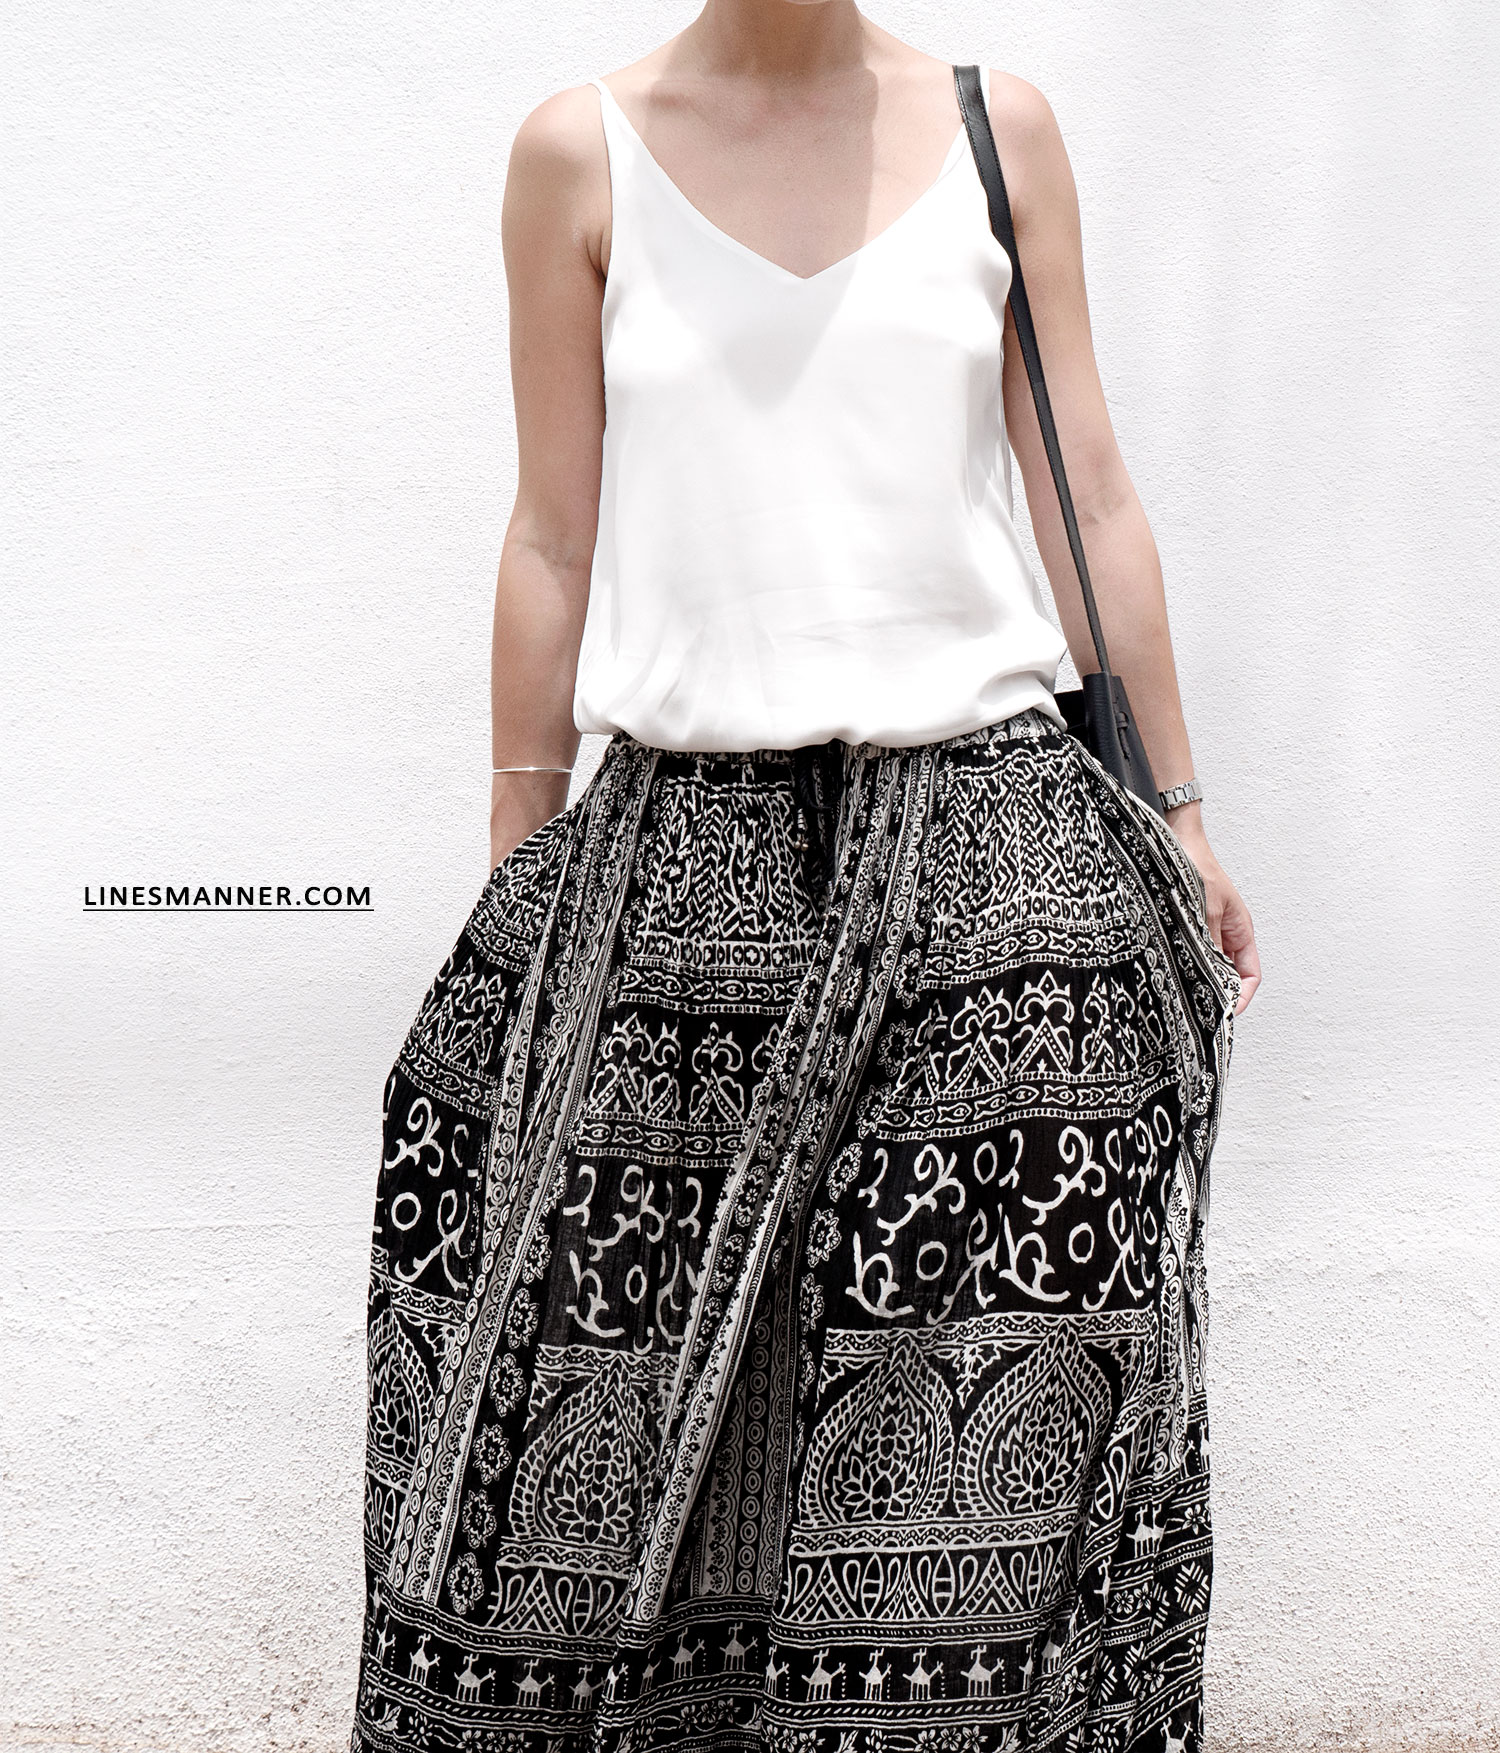 Lines-Manner-Tribal-Monochrome-Airy-Prints-Printed-Black_and_White-MVN-Details-Modern-11